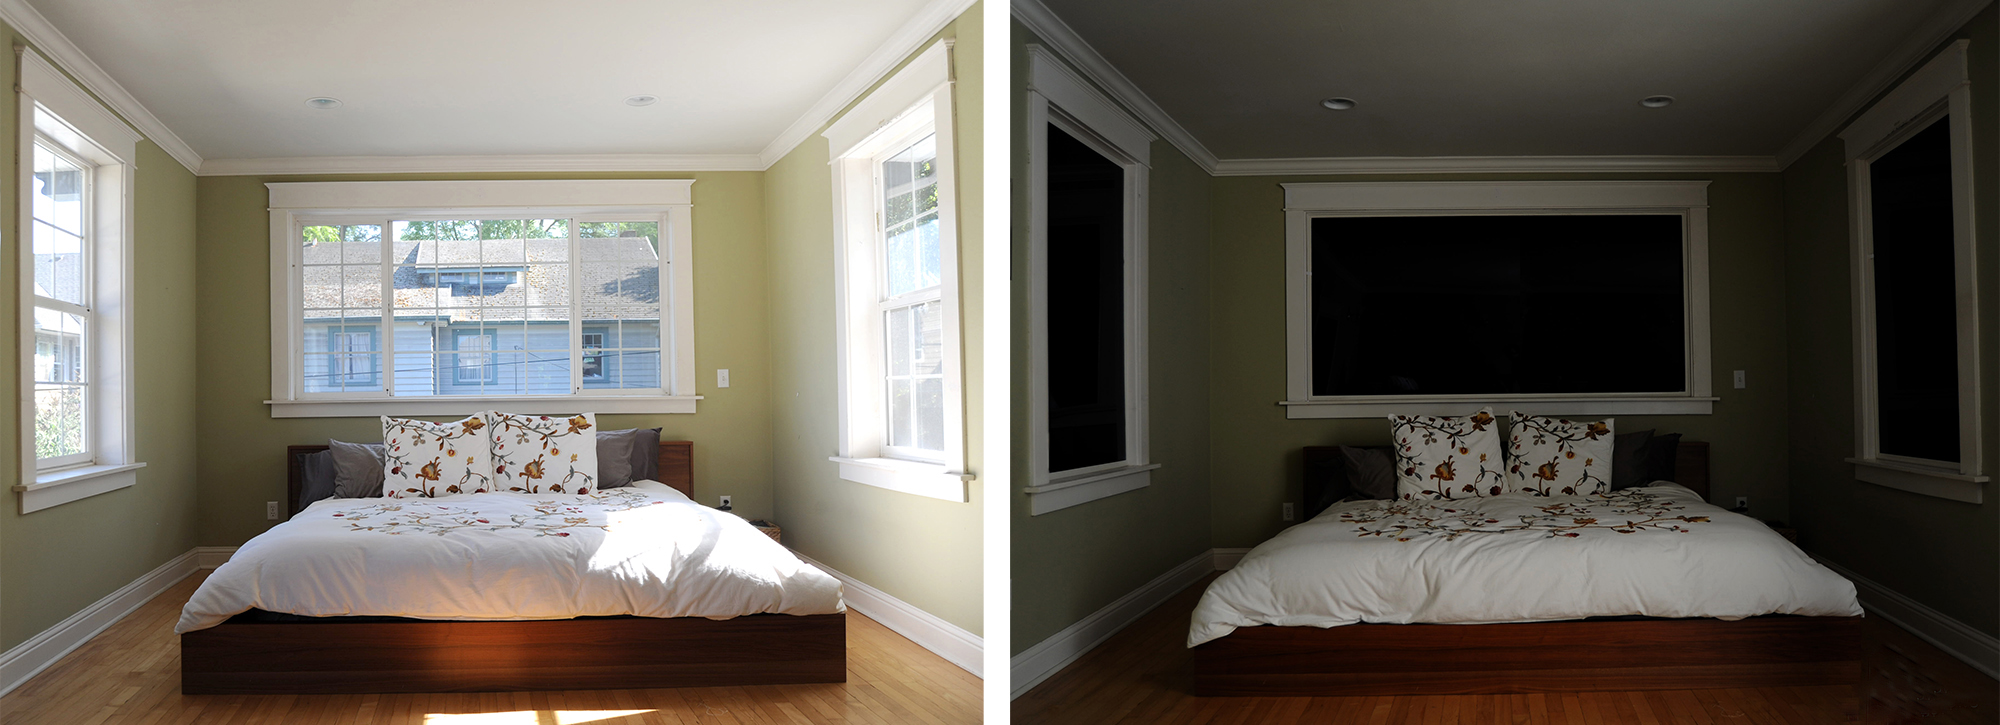 Room Darkening Vs. Blackout Shades